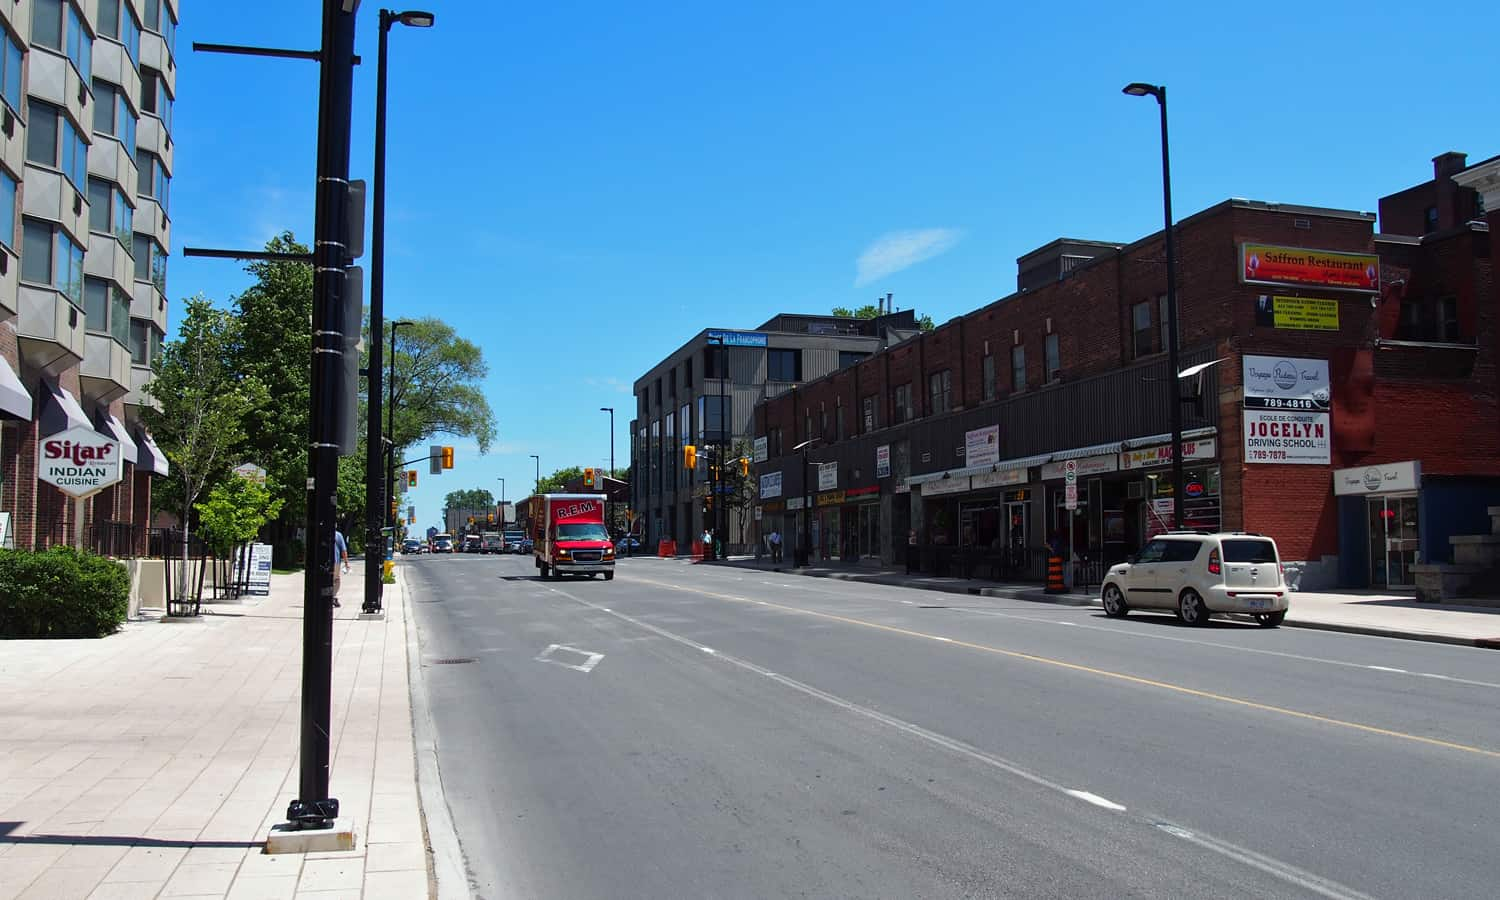 Looking east on Rideau Street with 450 Rideau in context